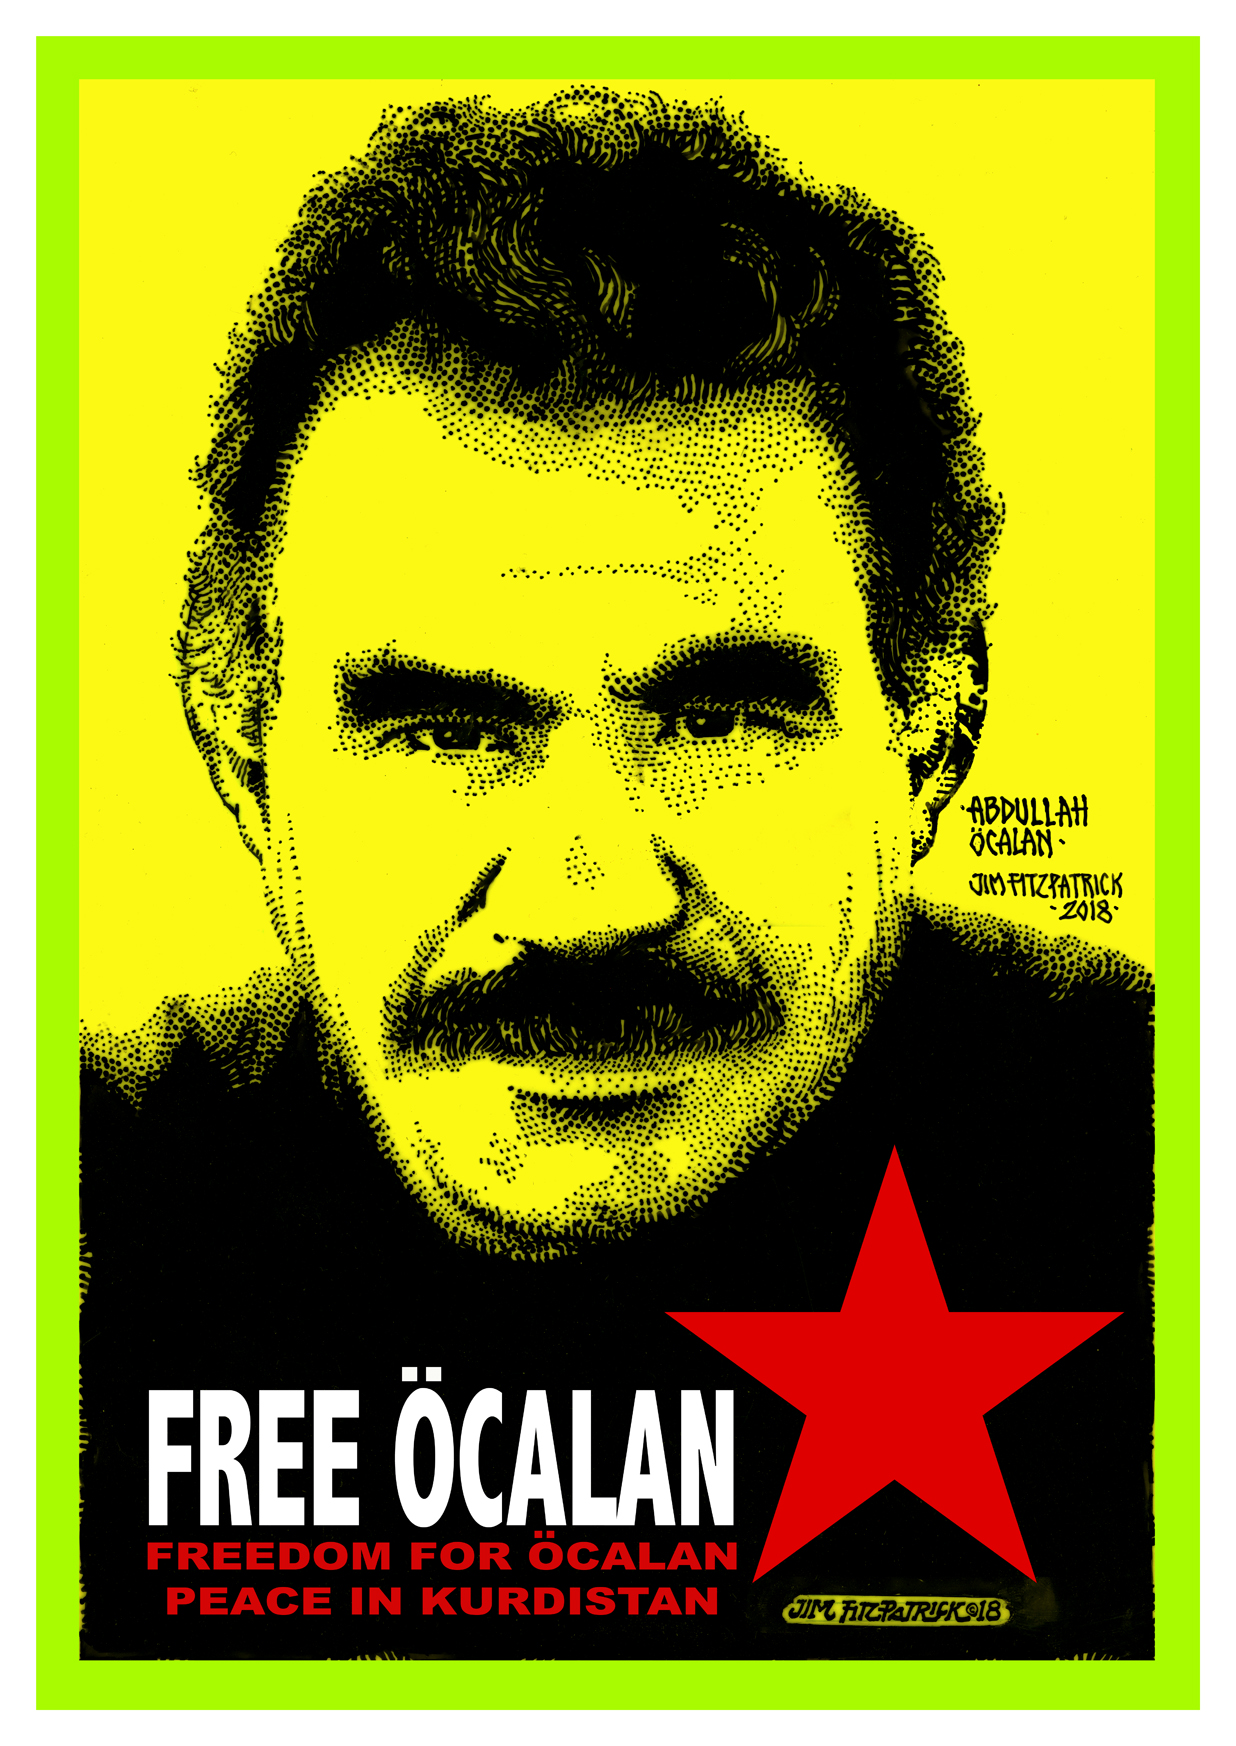 Happy Birthday, Abdullah Öcalan!